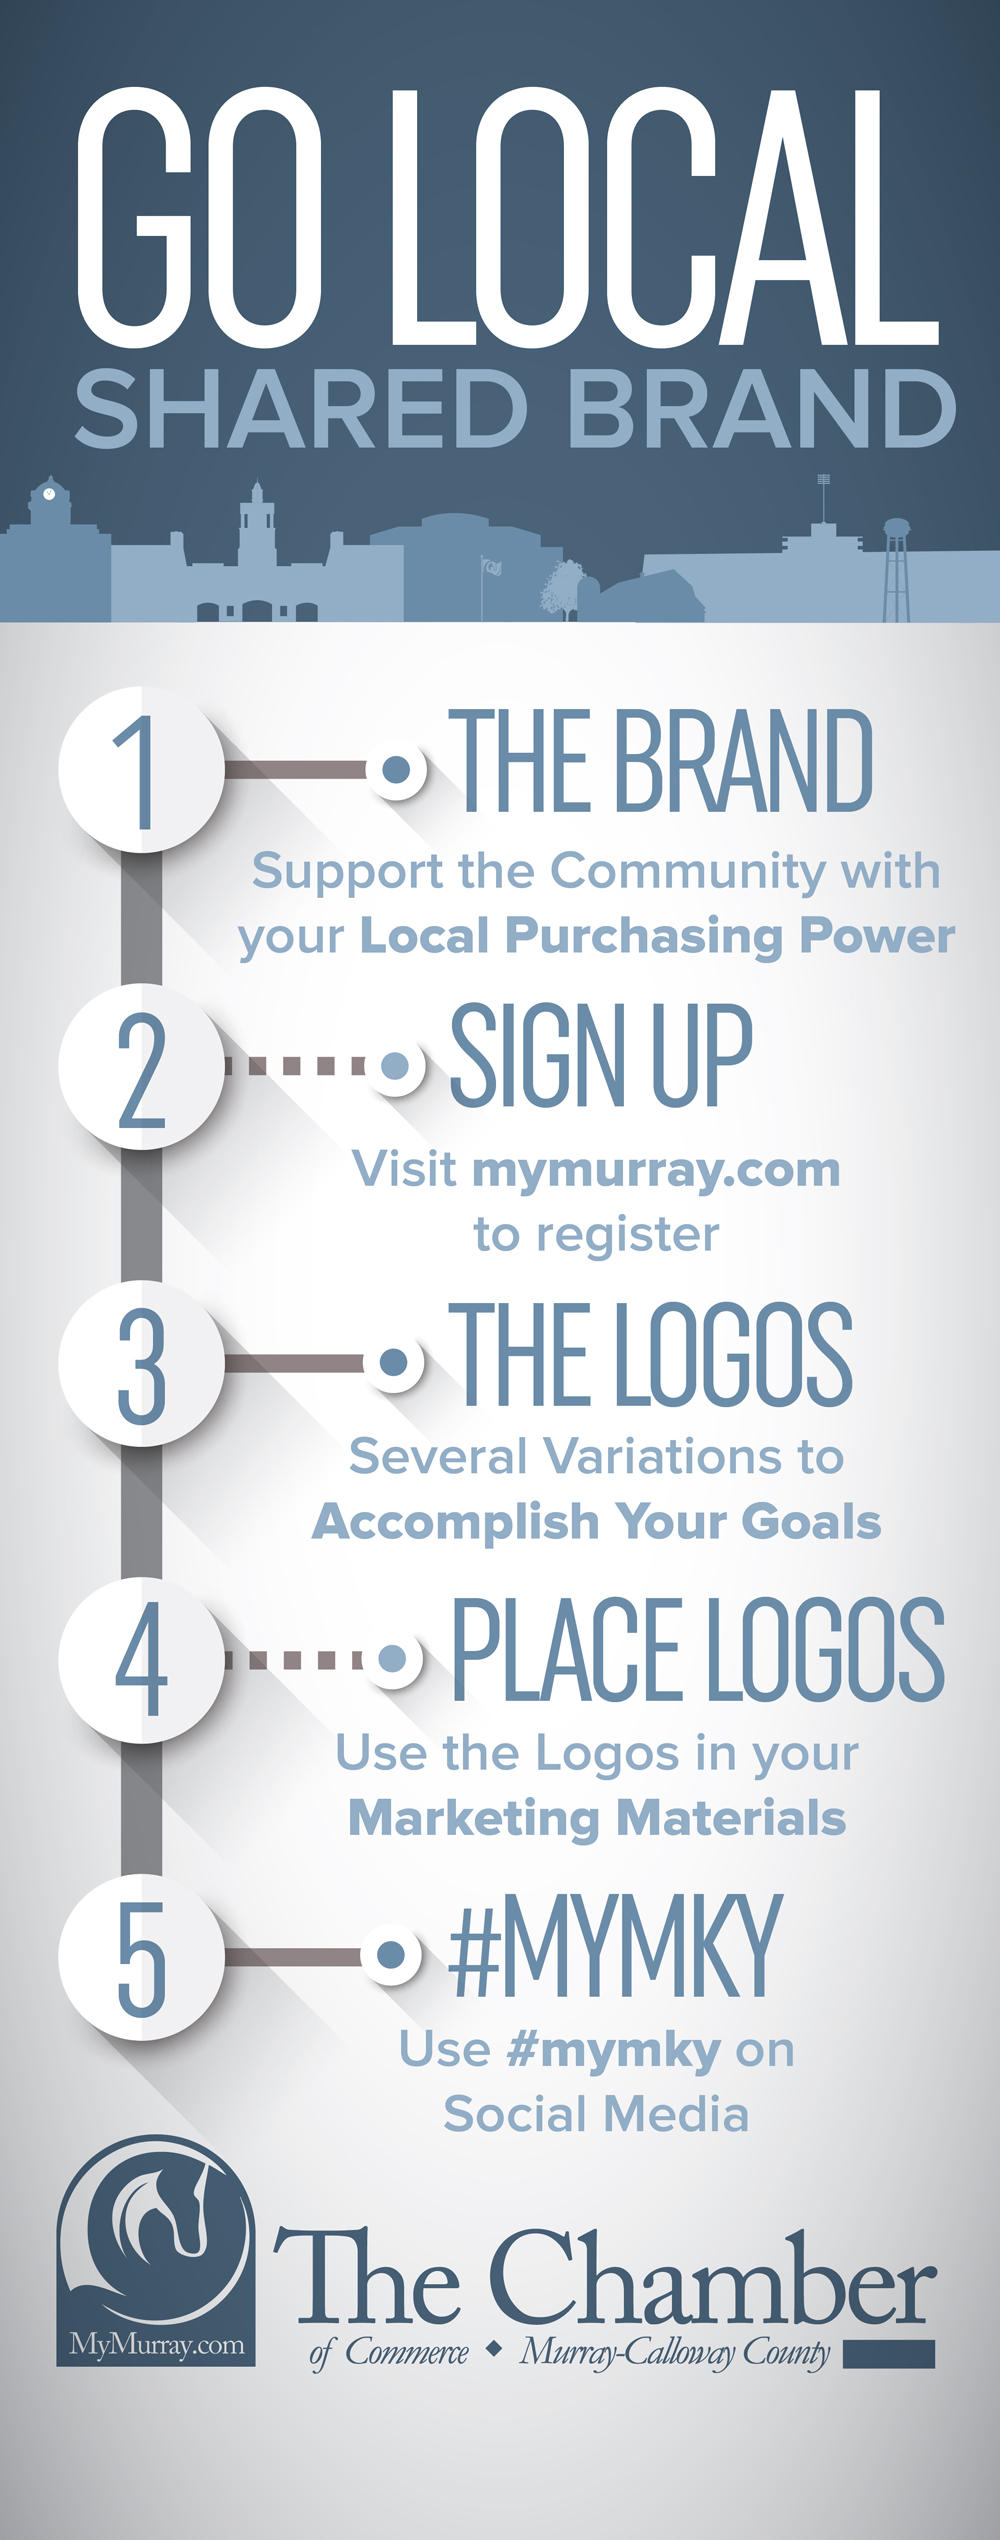 go-local-shared-brand-infographic